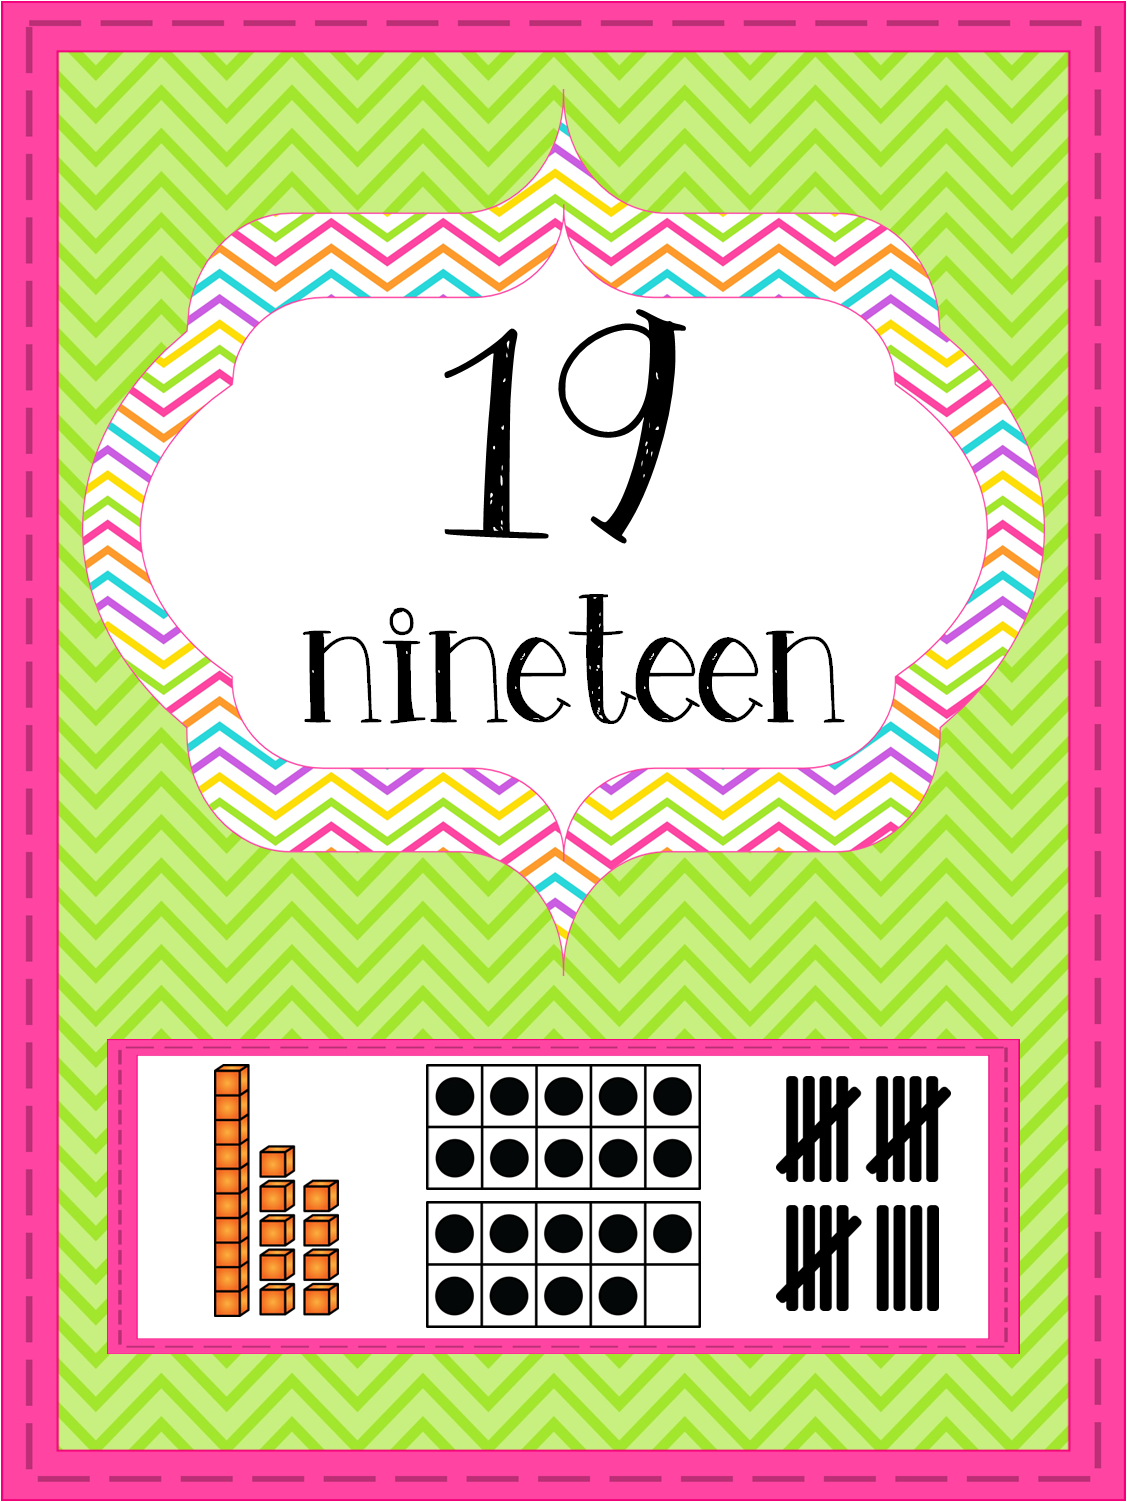 http://www.teacherspayteachers.com/Product/Bright-Chevron-Number-Posters-0-20-1270778